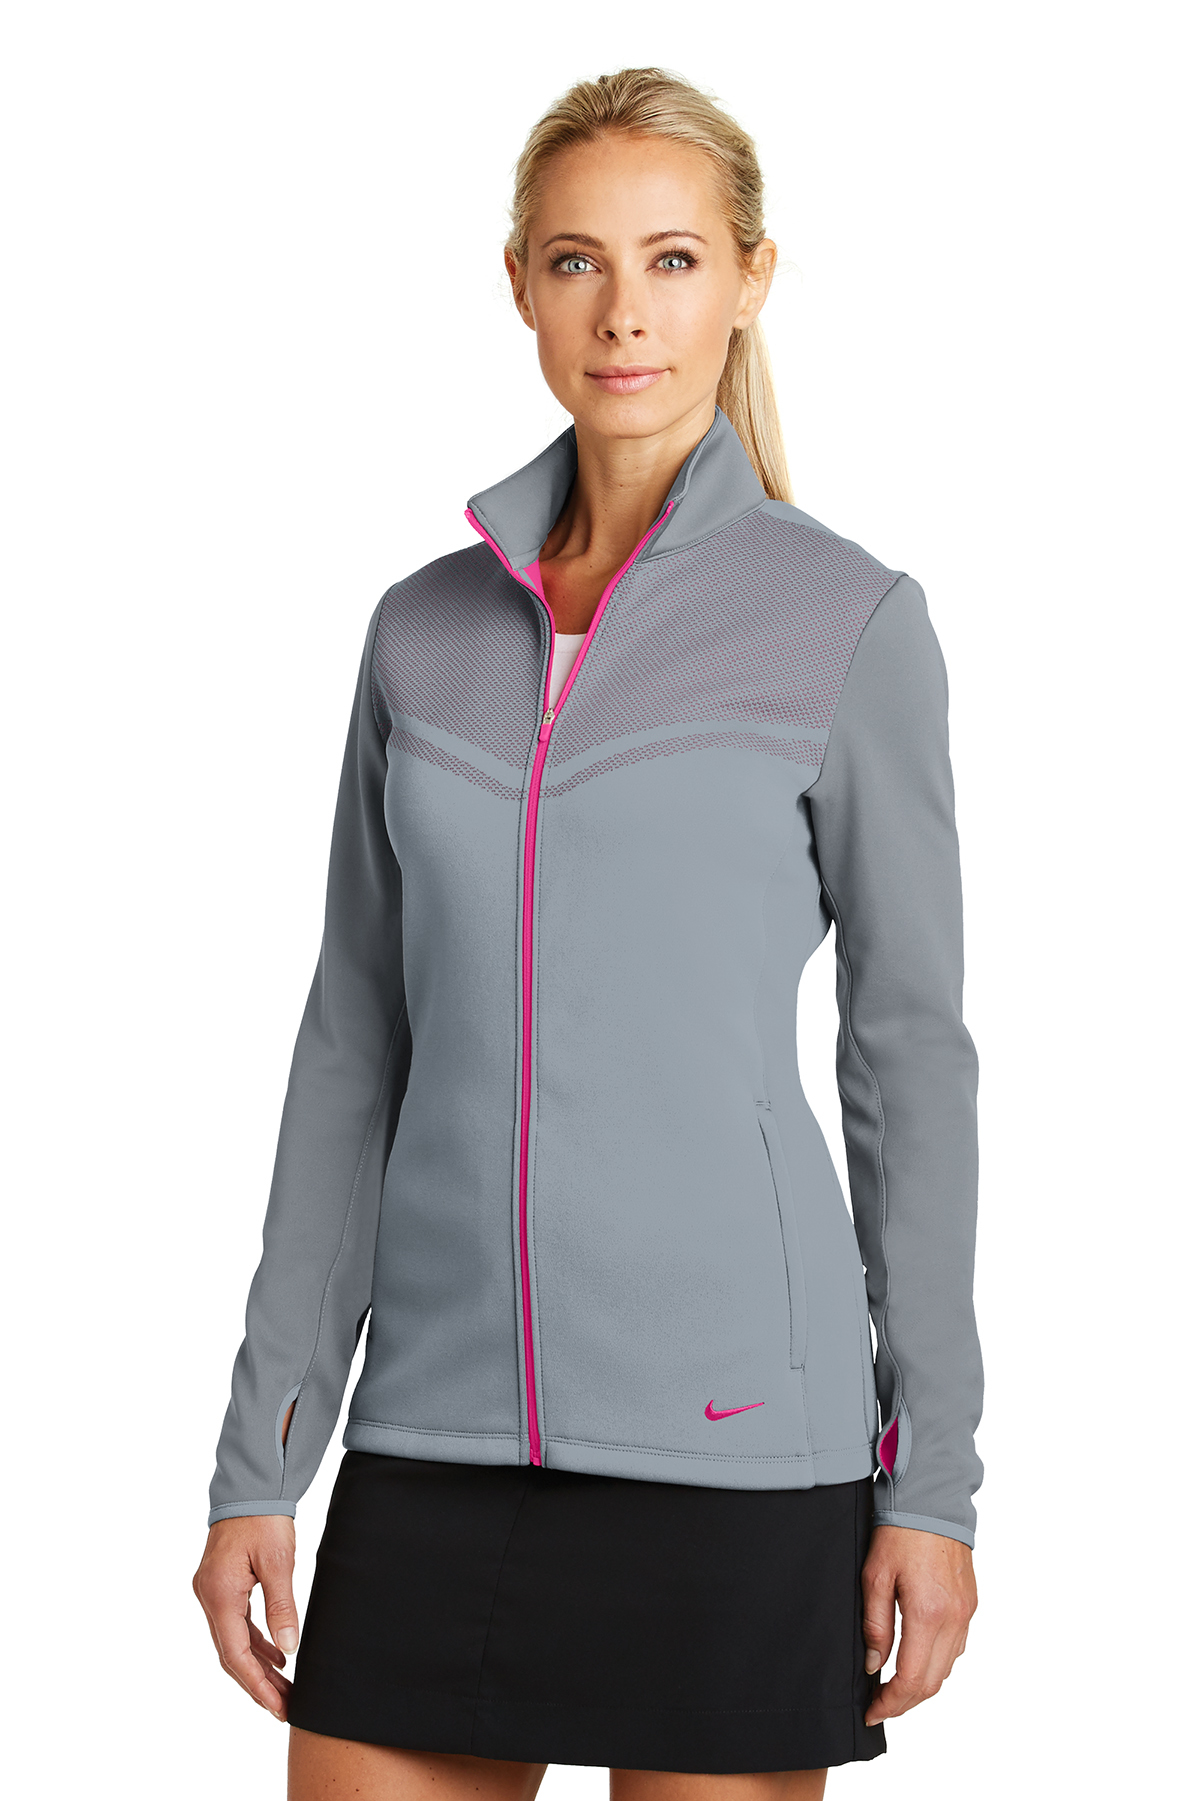 03380cd8ec3e ... Nike Ladies Therma-FIT Hypervis Full-Zip Jacket. A maximum of 8 logos  have been uploaded. Please remove a logo from My Logos to continue